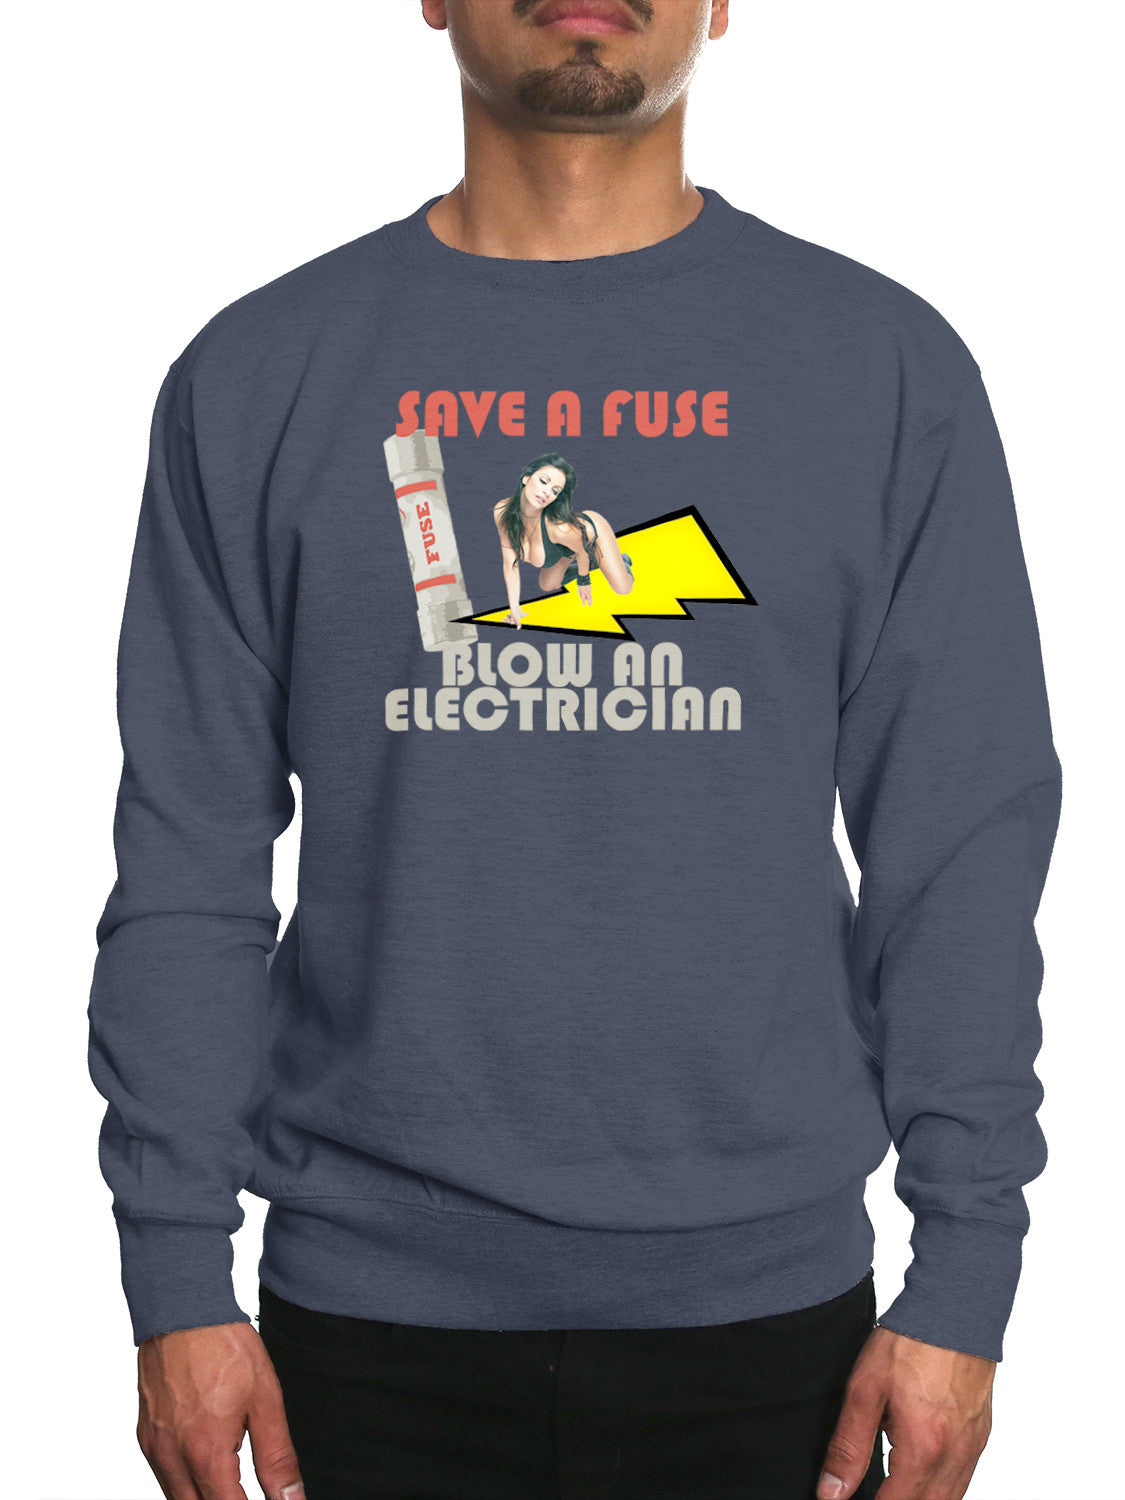 BLOW AN ELECTRICIAN